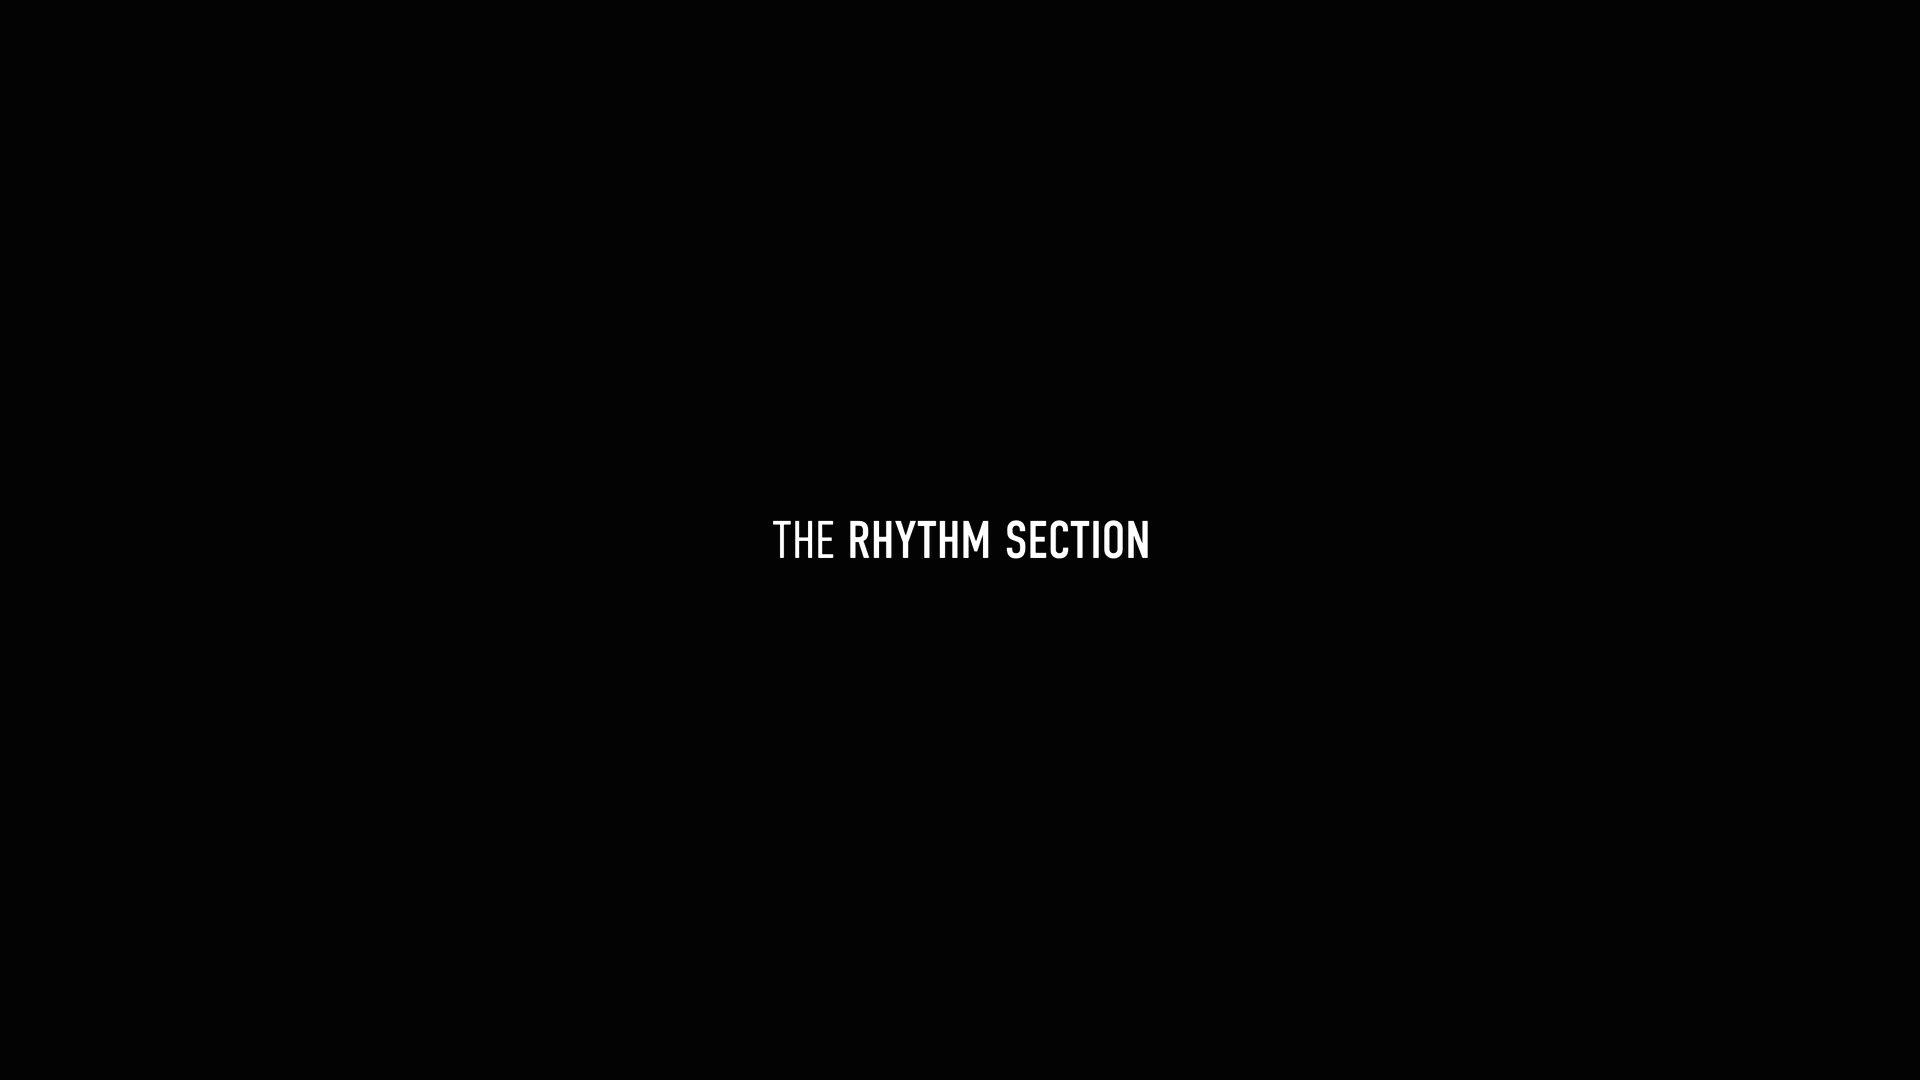 the rhythm section title